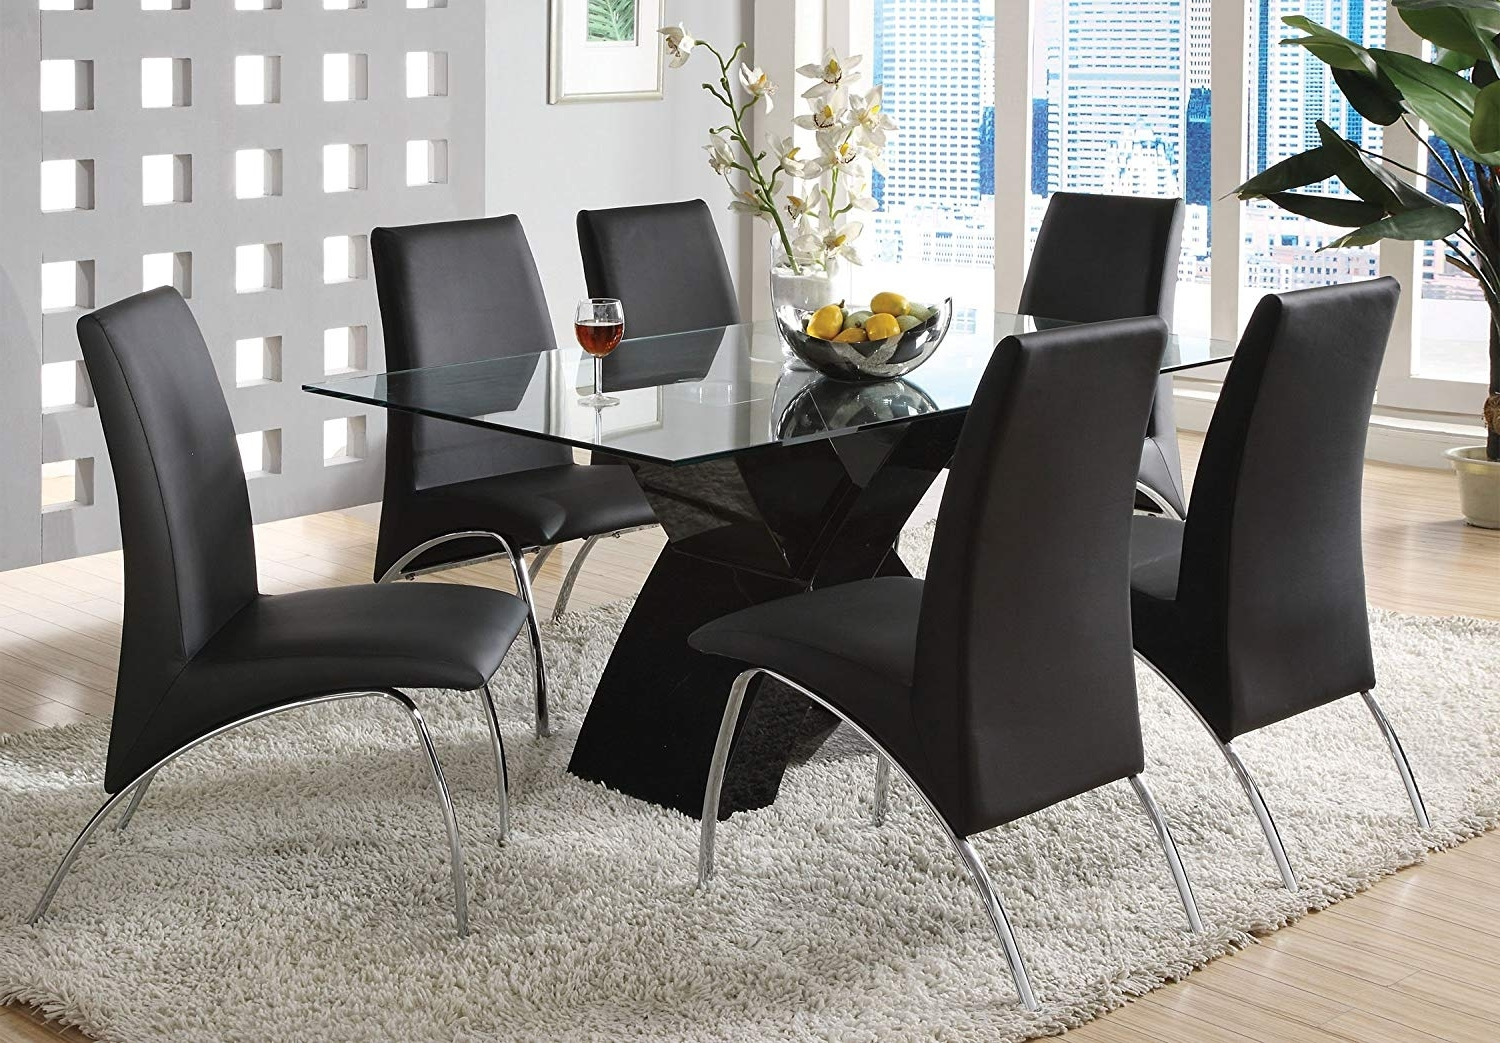 Black Glass Dining Tables 6 Chairs Pertaining To Widely Used Amazon: Furniture Of America Rivendale 7 Piece Modern Dining (View 21 of 25)